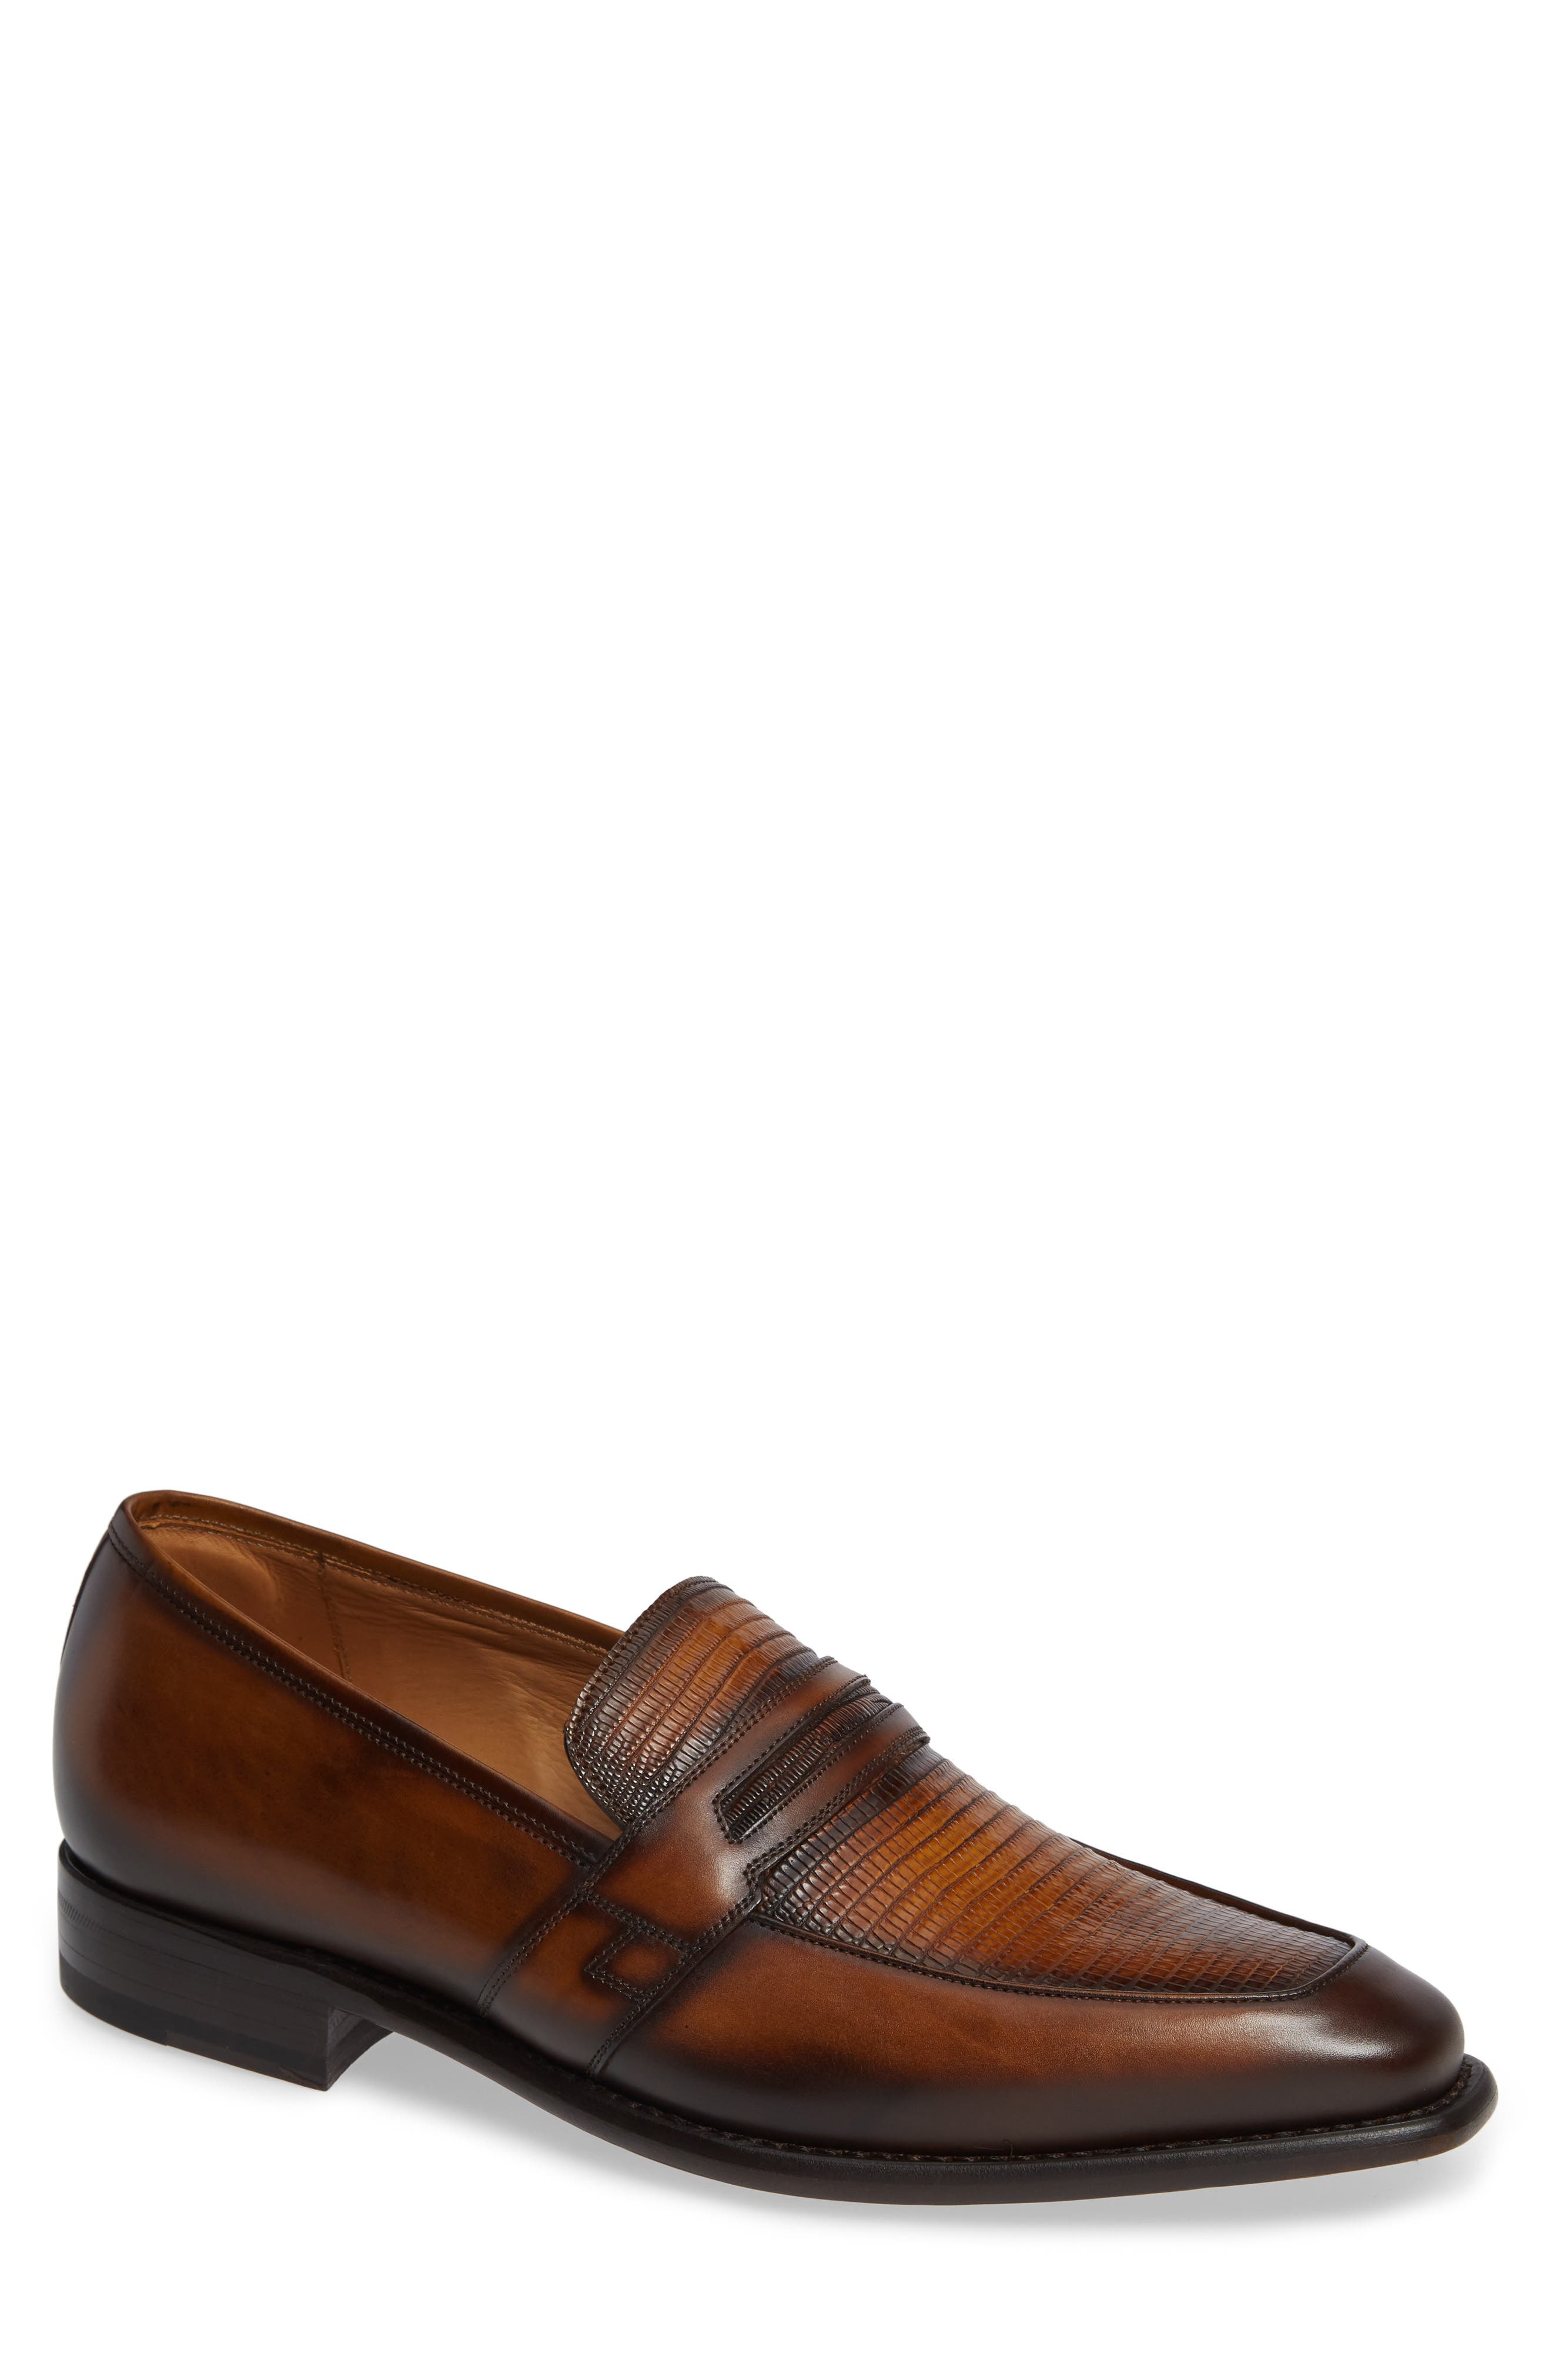 Hess Penny Loafer,                         Main,                         color, HONEY LEATHER